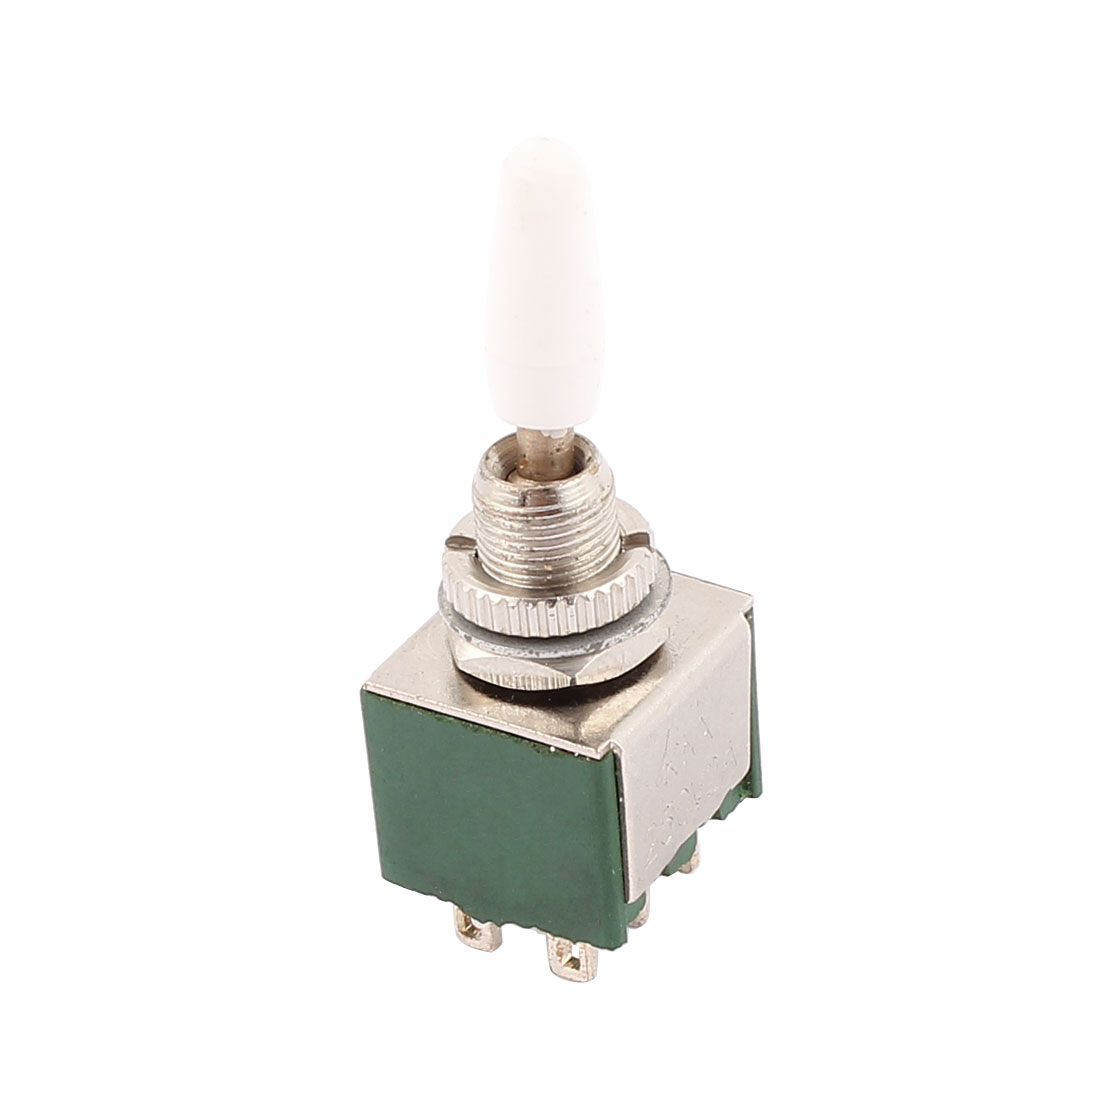 AC 250V 2A DPDT ON/ON 6 Terminals 2 Position Green Toggle Switches